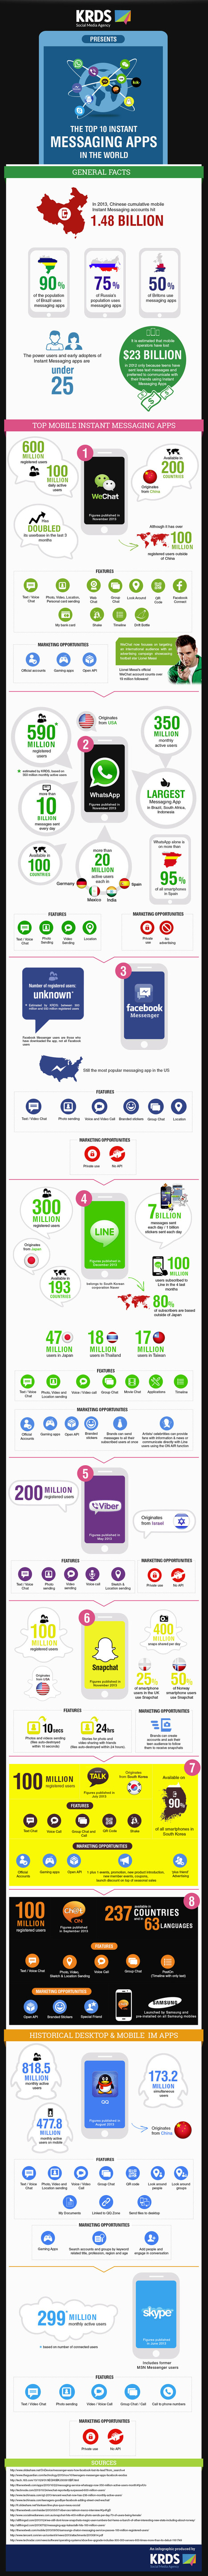 Top 10 Instant Messaging Apps #Infographic - Best Infographics | digital marketing strategy | Scoop.it